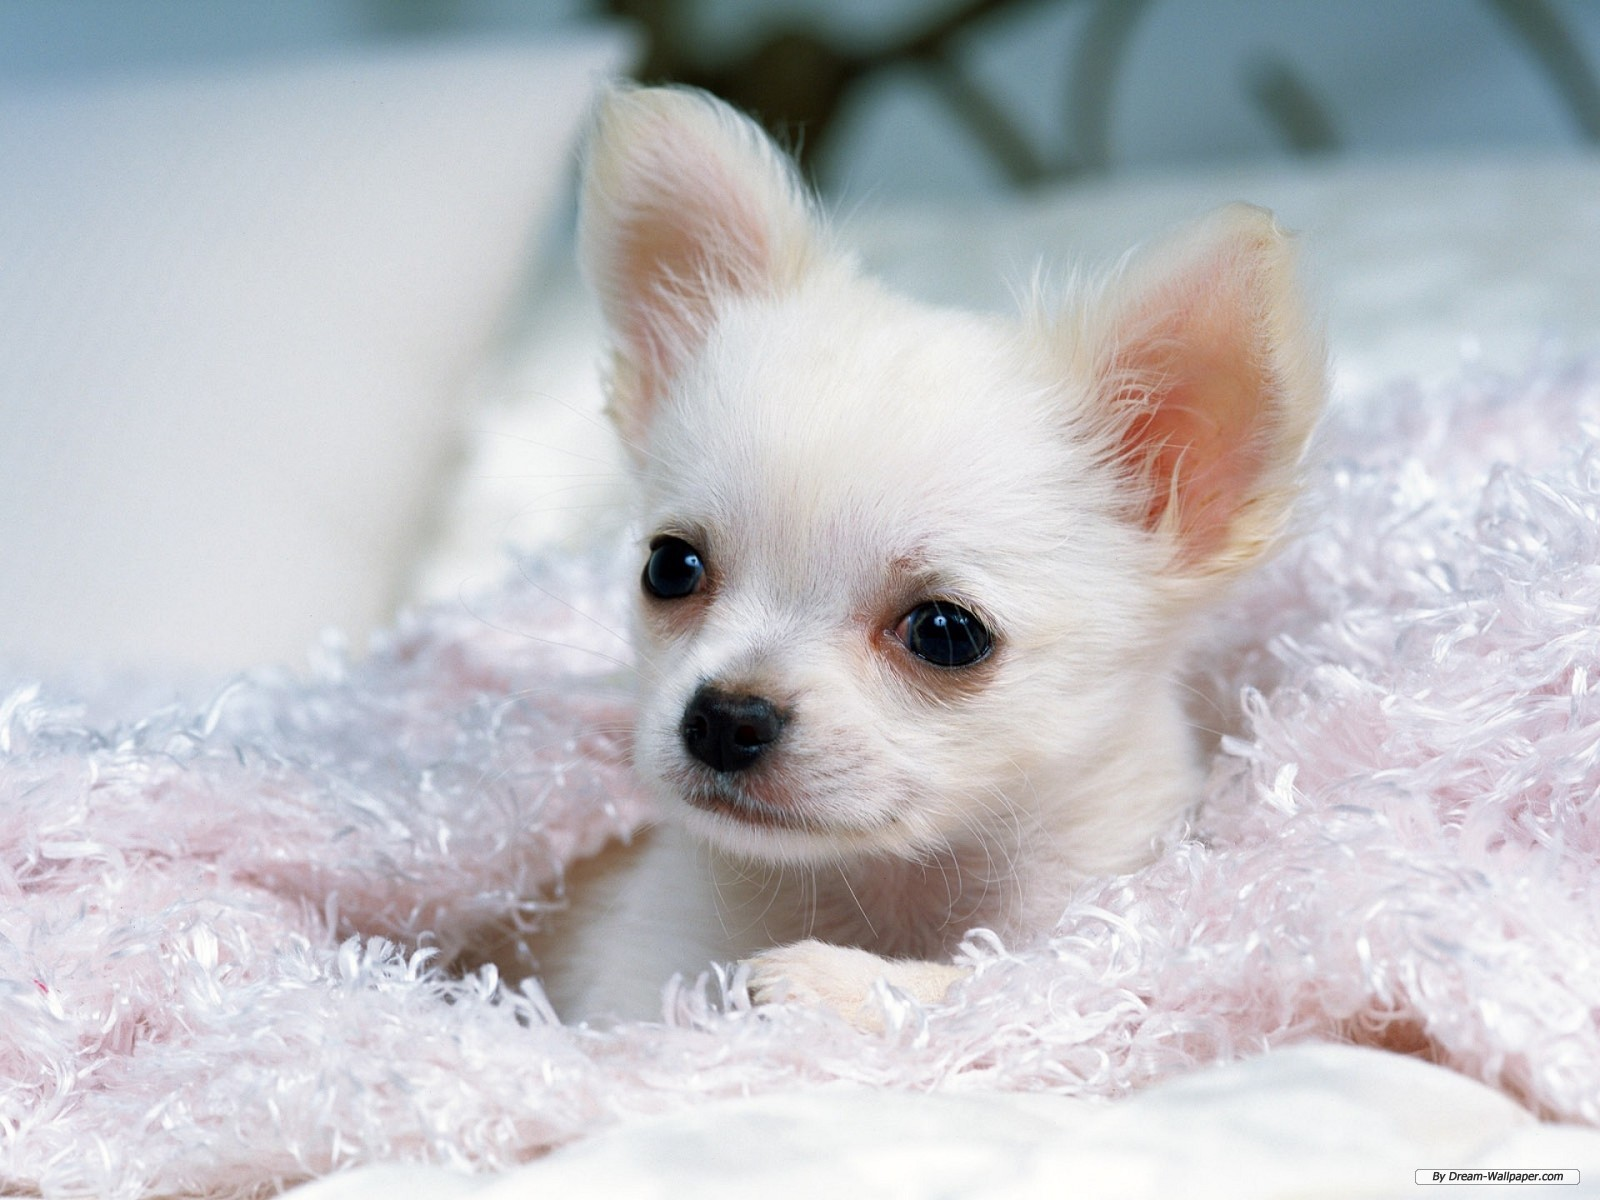 Animal wallpaper   Chihuahua wallpaper   1600x1200 wallpaper 1600x1200